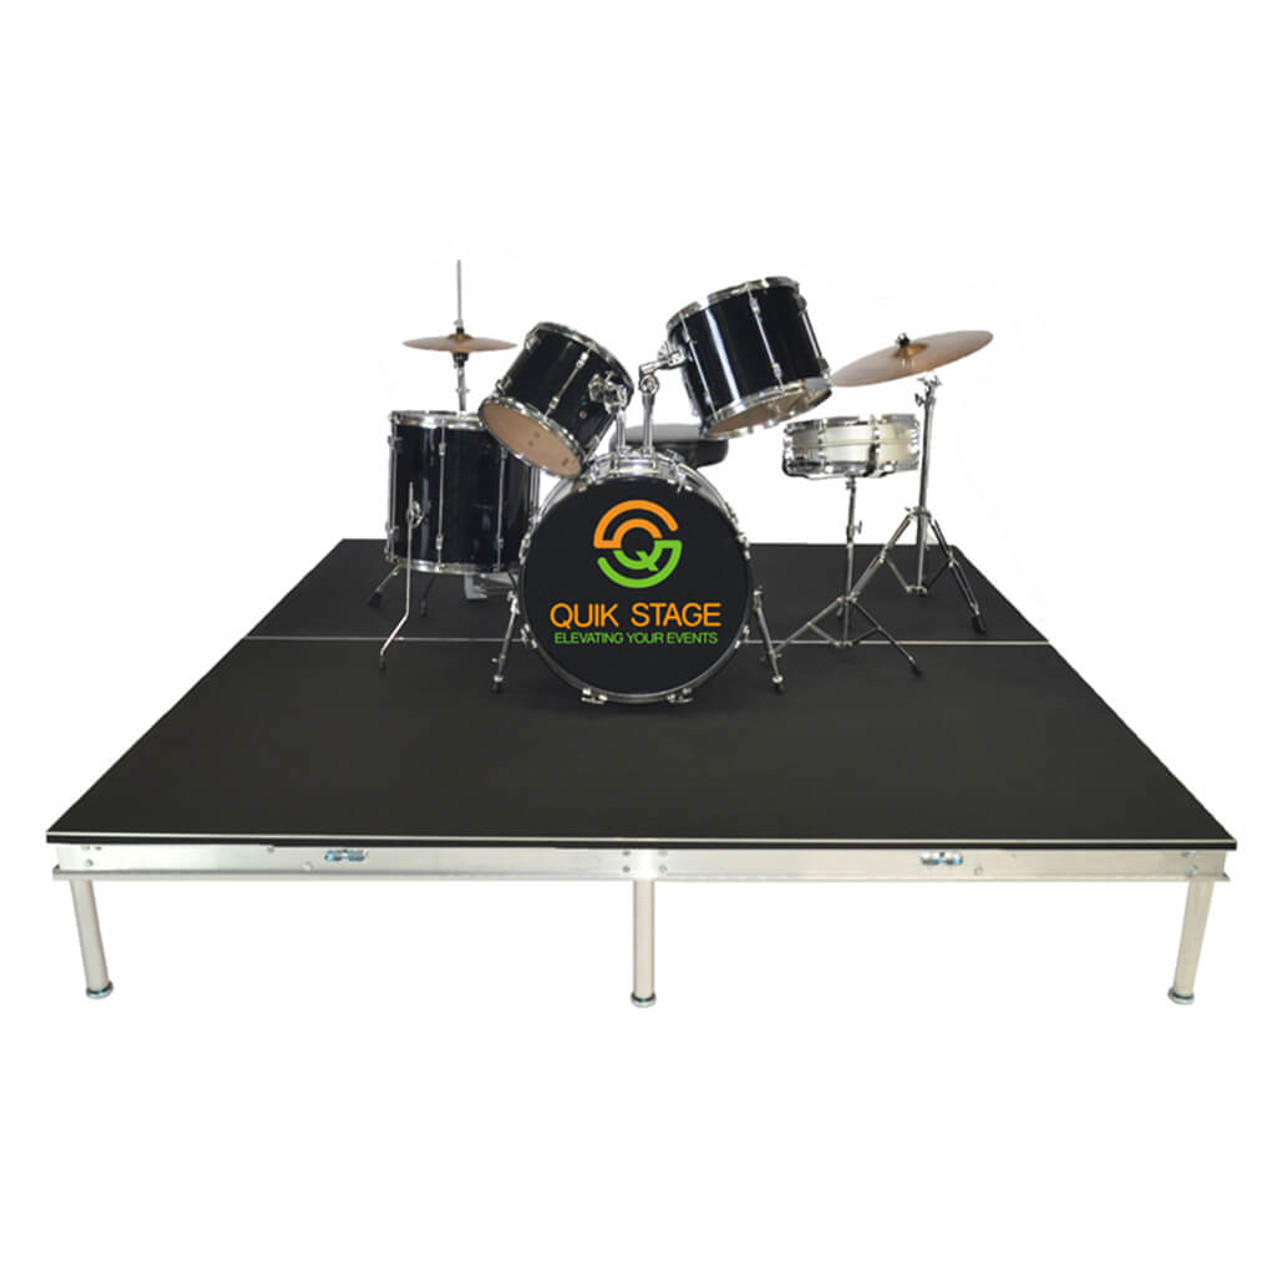 Quik Stage 8' x 16' High Portable Stage Package with Black Polyvinyl Non-Skid Surface. Additional Heights and Surfaces Available - Drum Riser without skirting